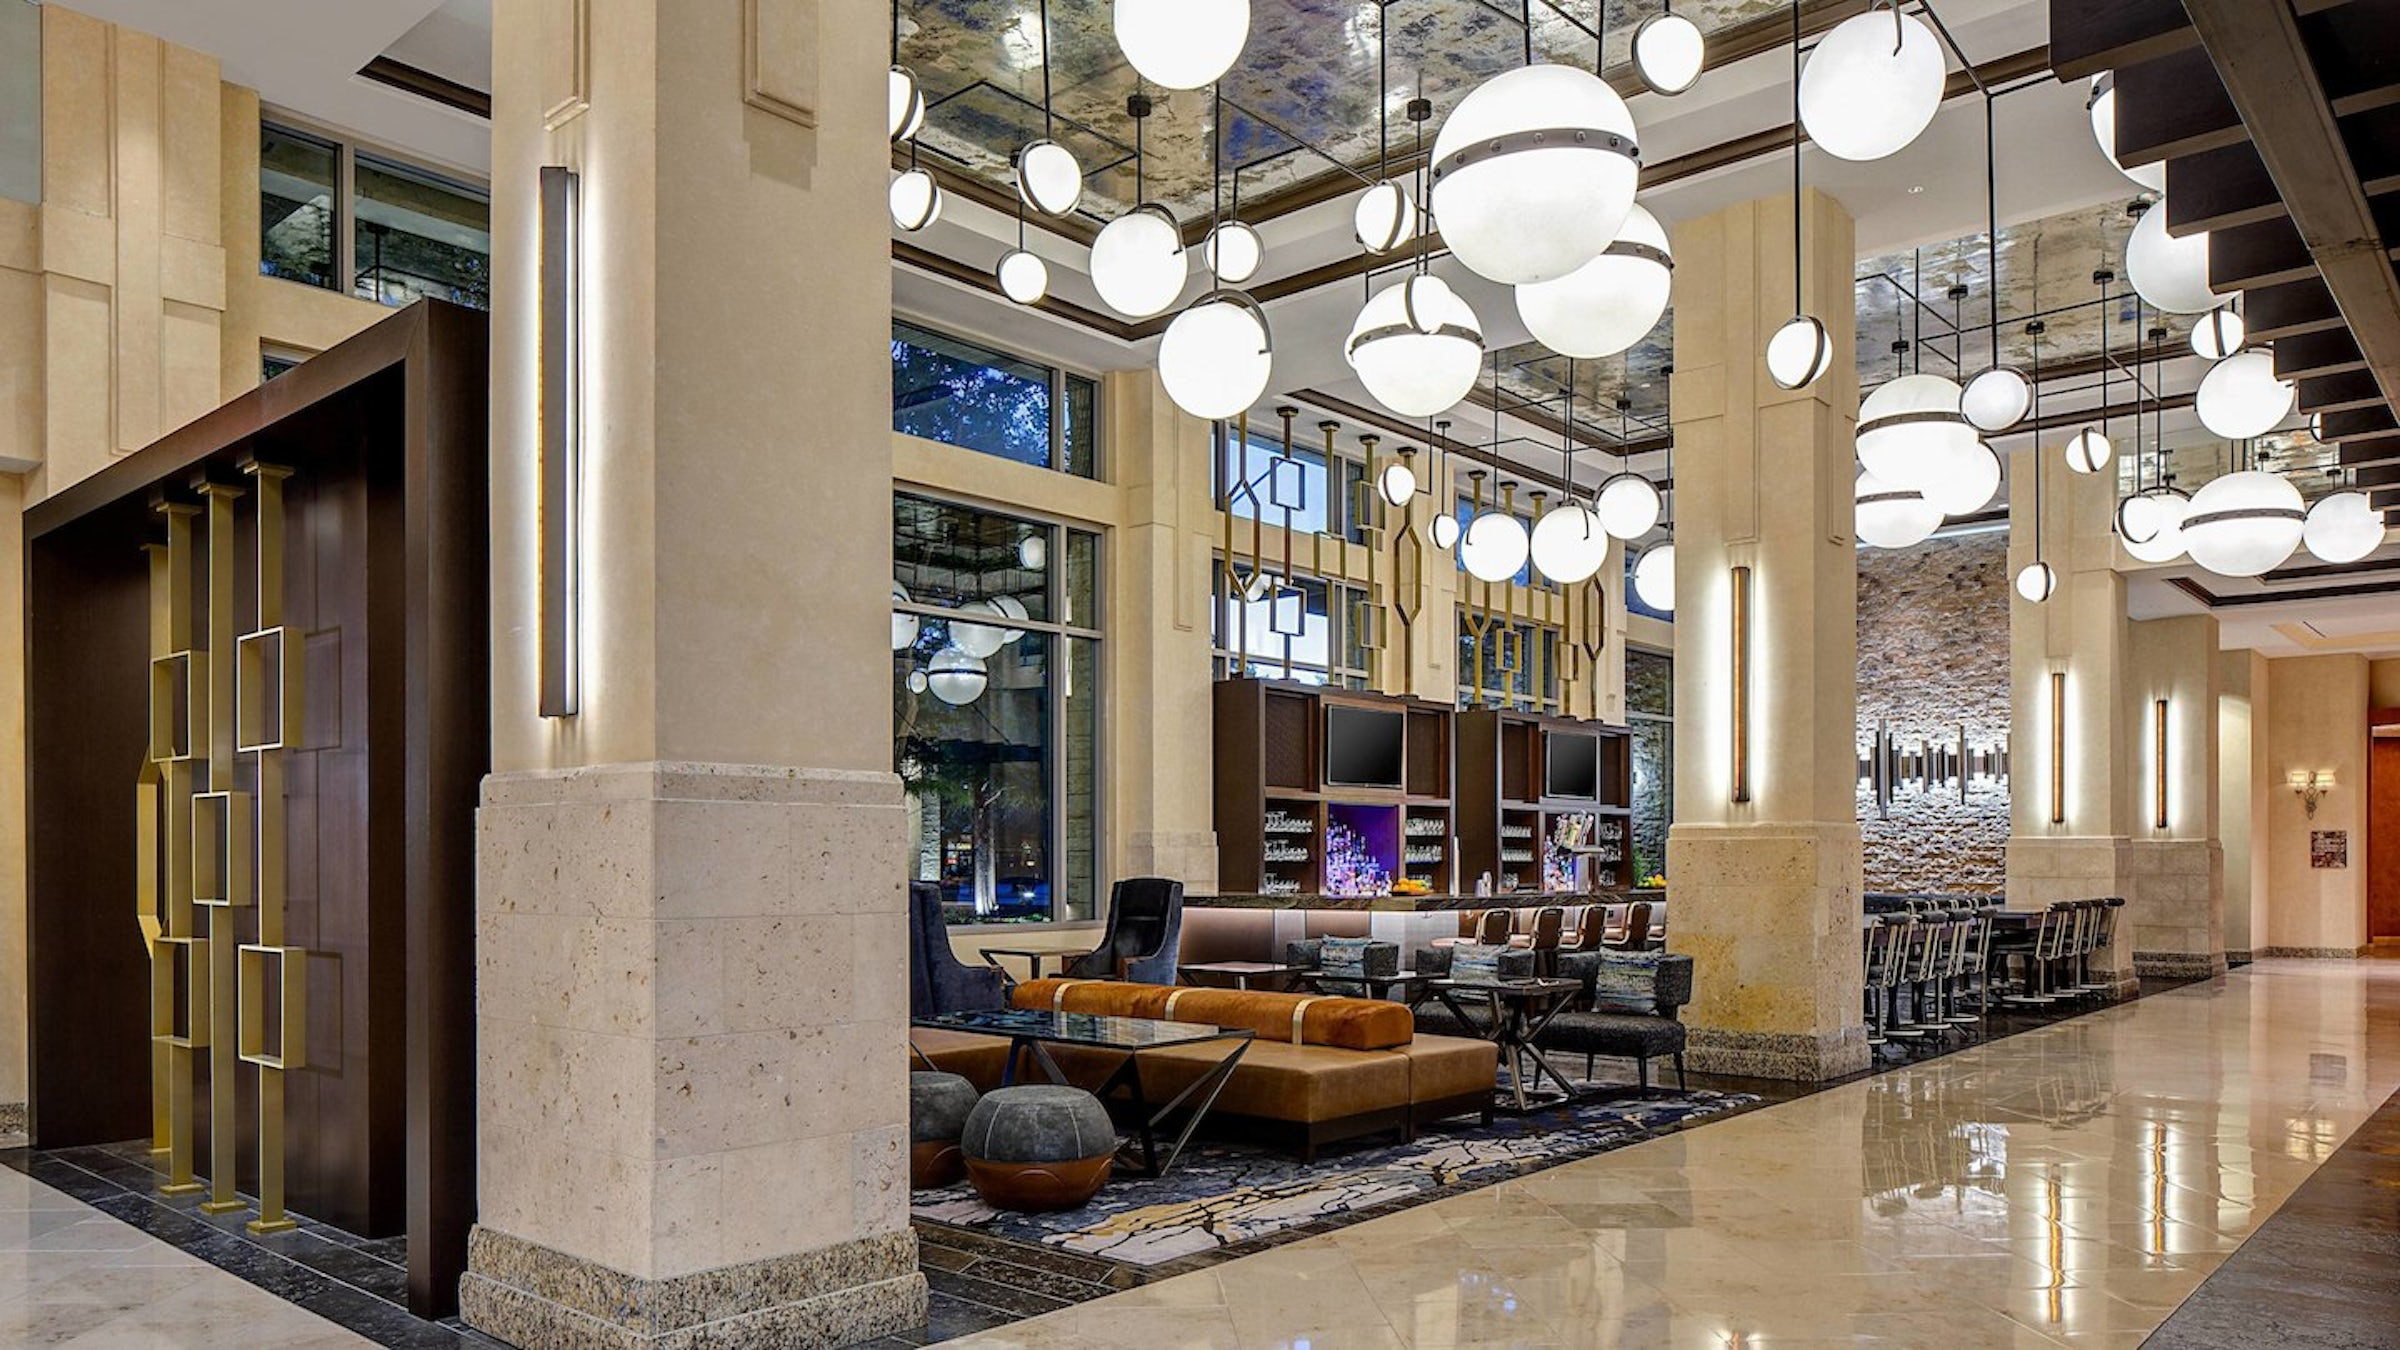 Dallas/Plano Marriott at Legacy Town Center in Beyond Dallas